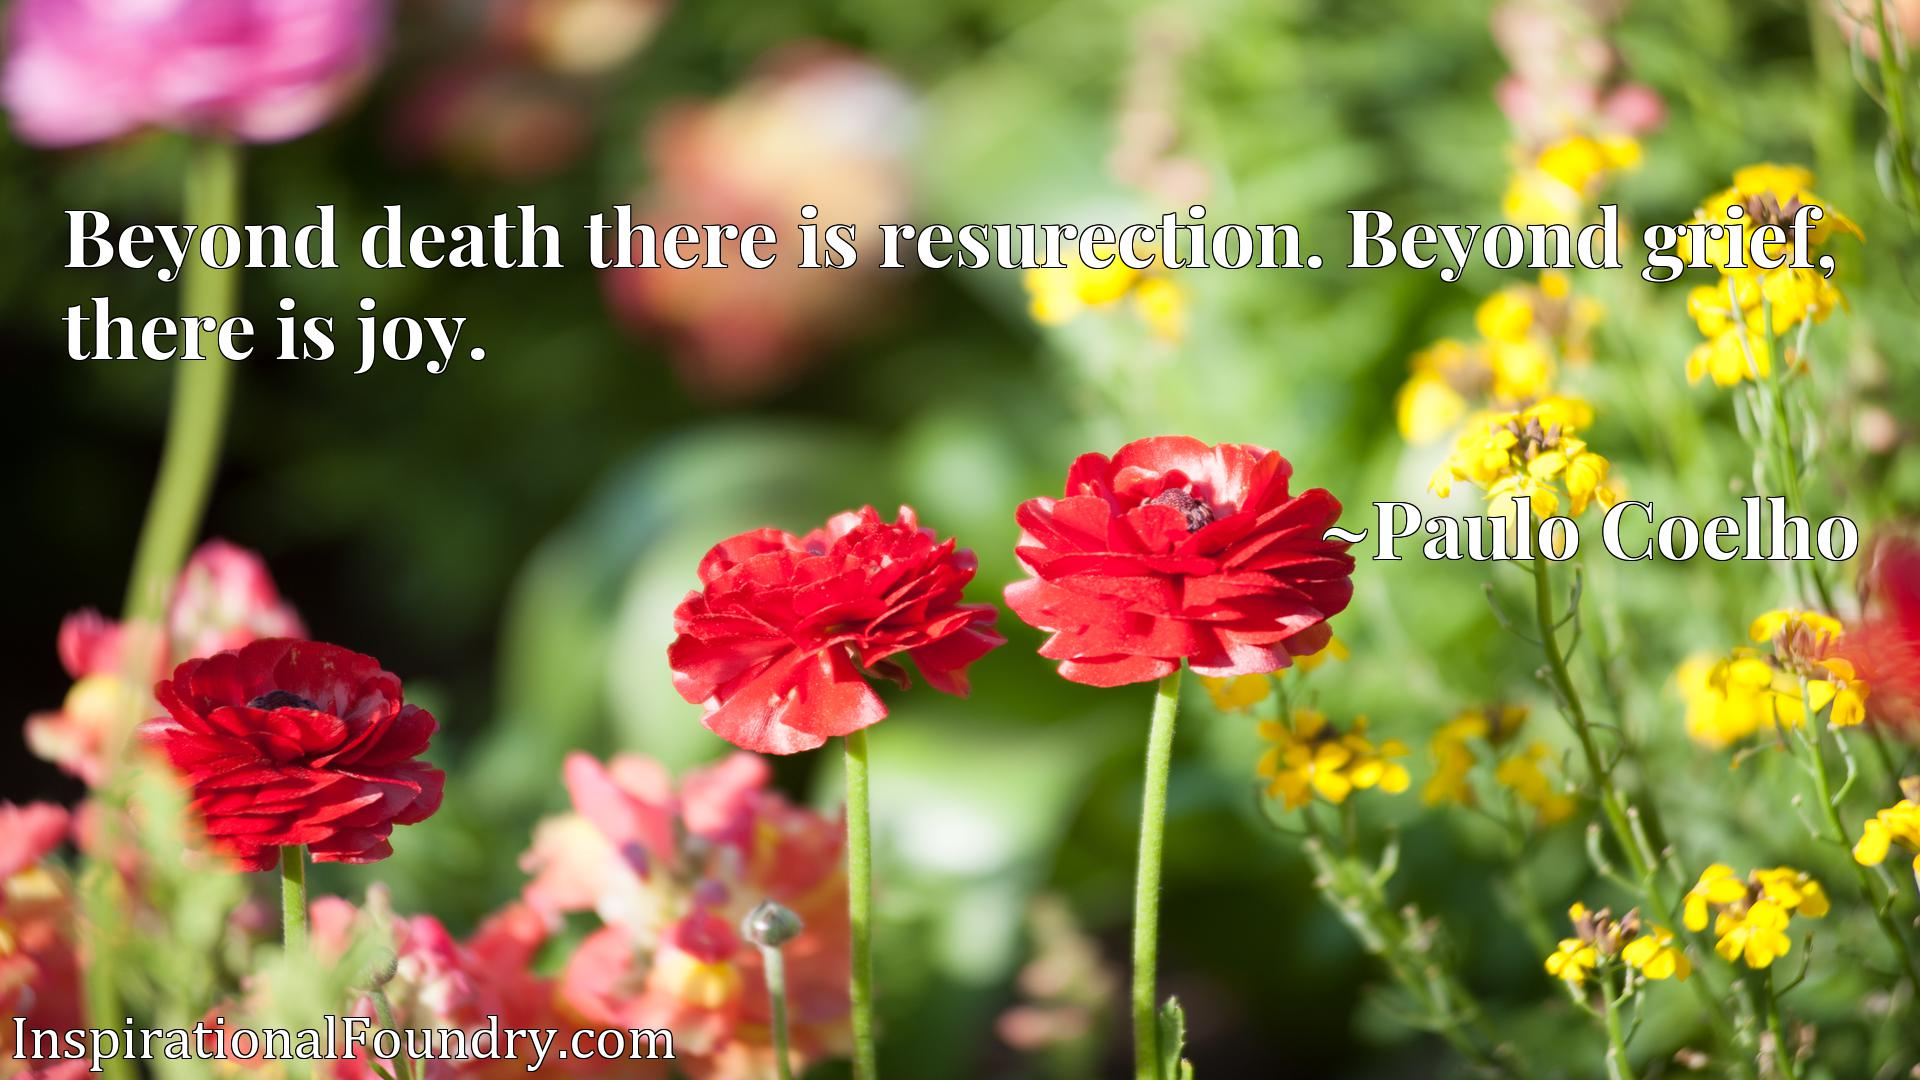 Beyond death there is resurection. Beyond grief, there is joy.